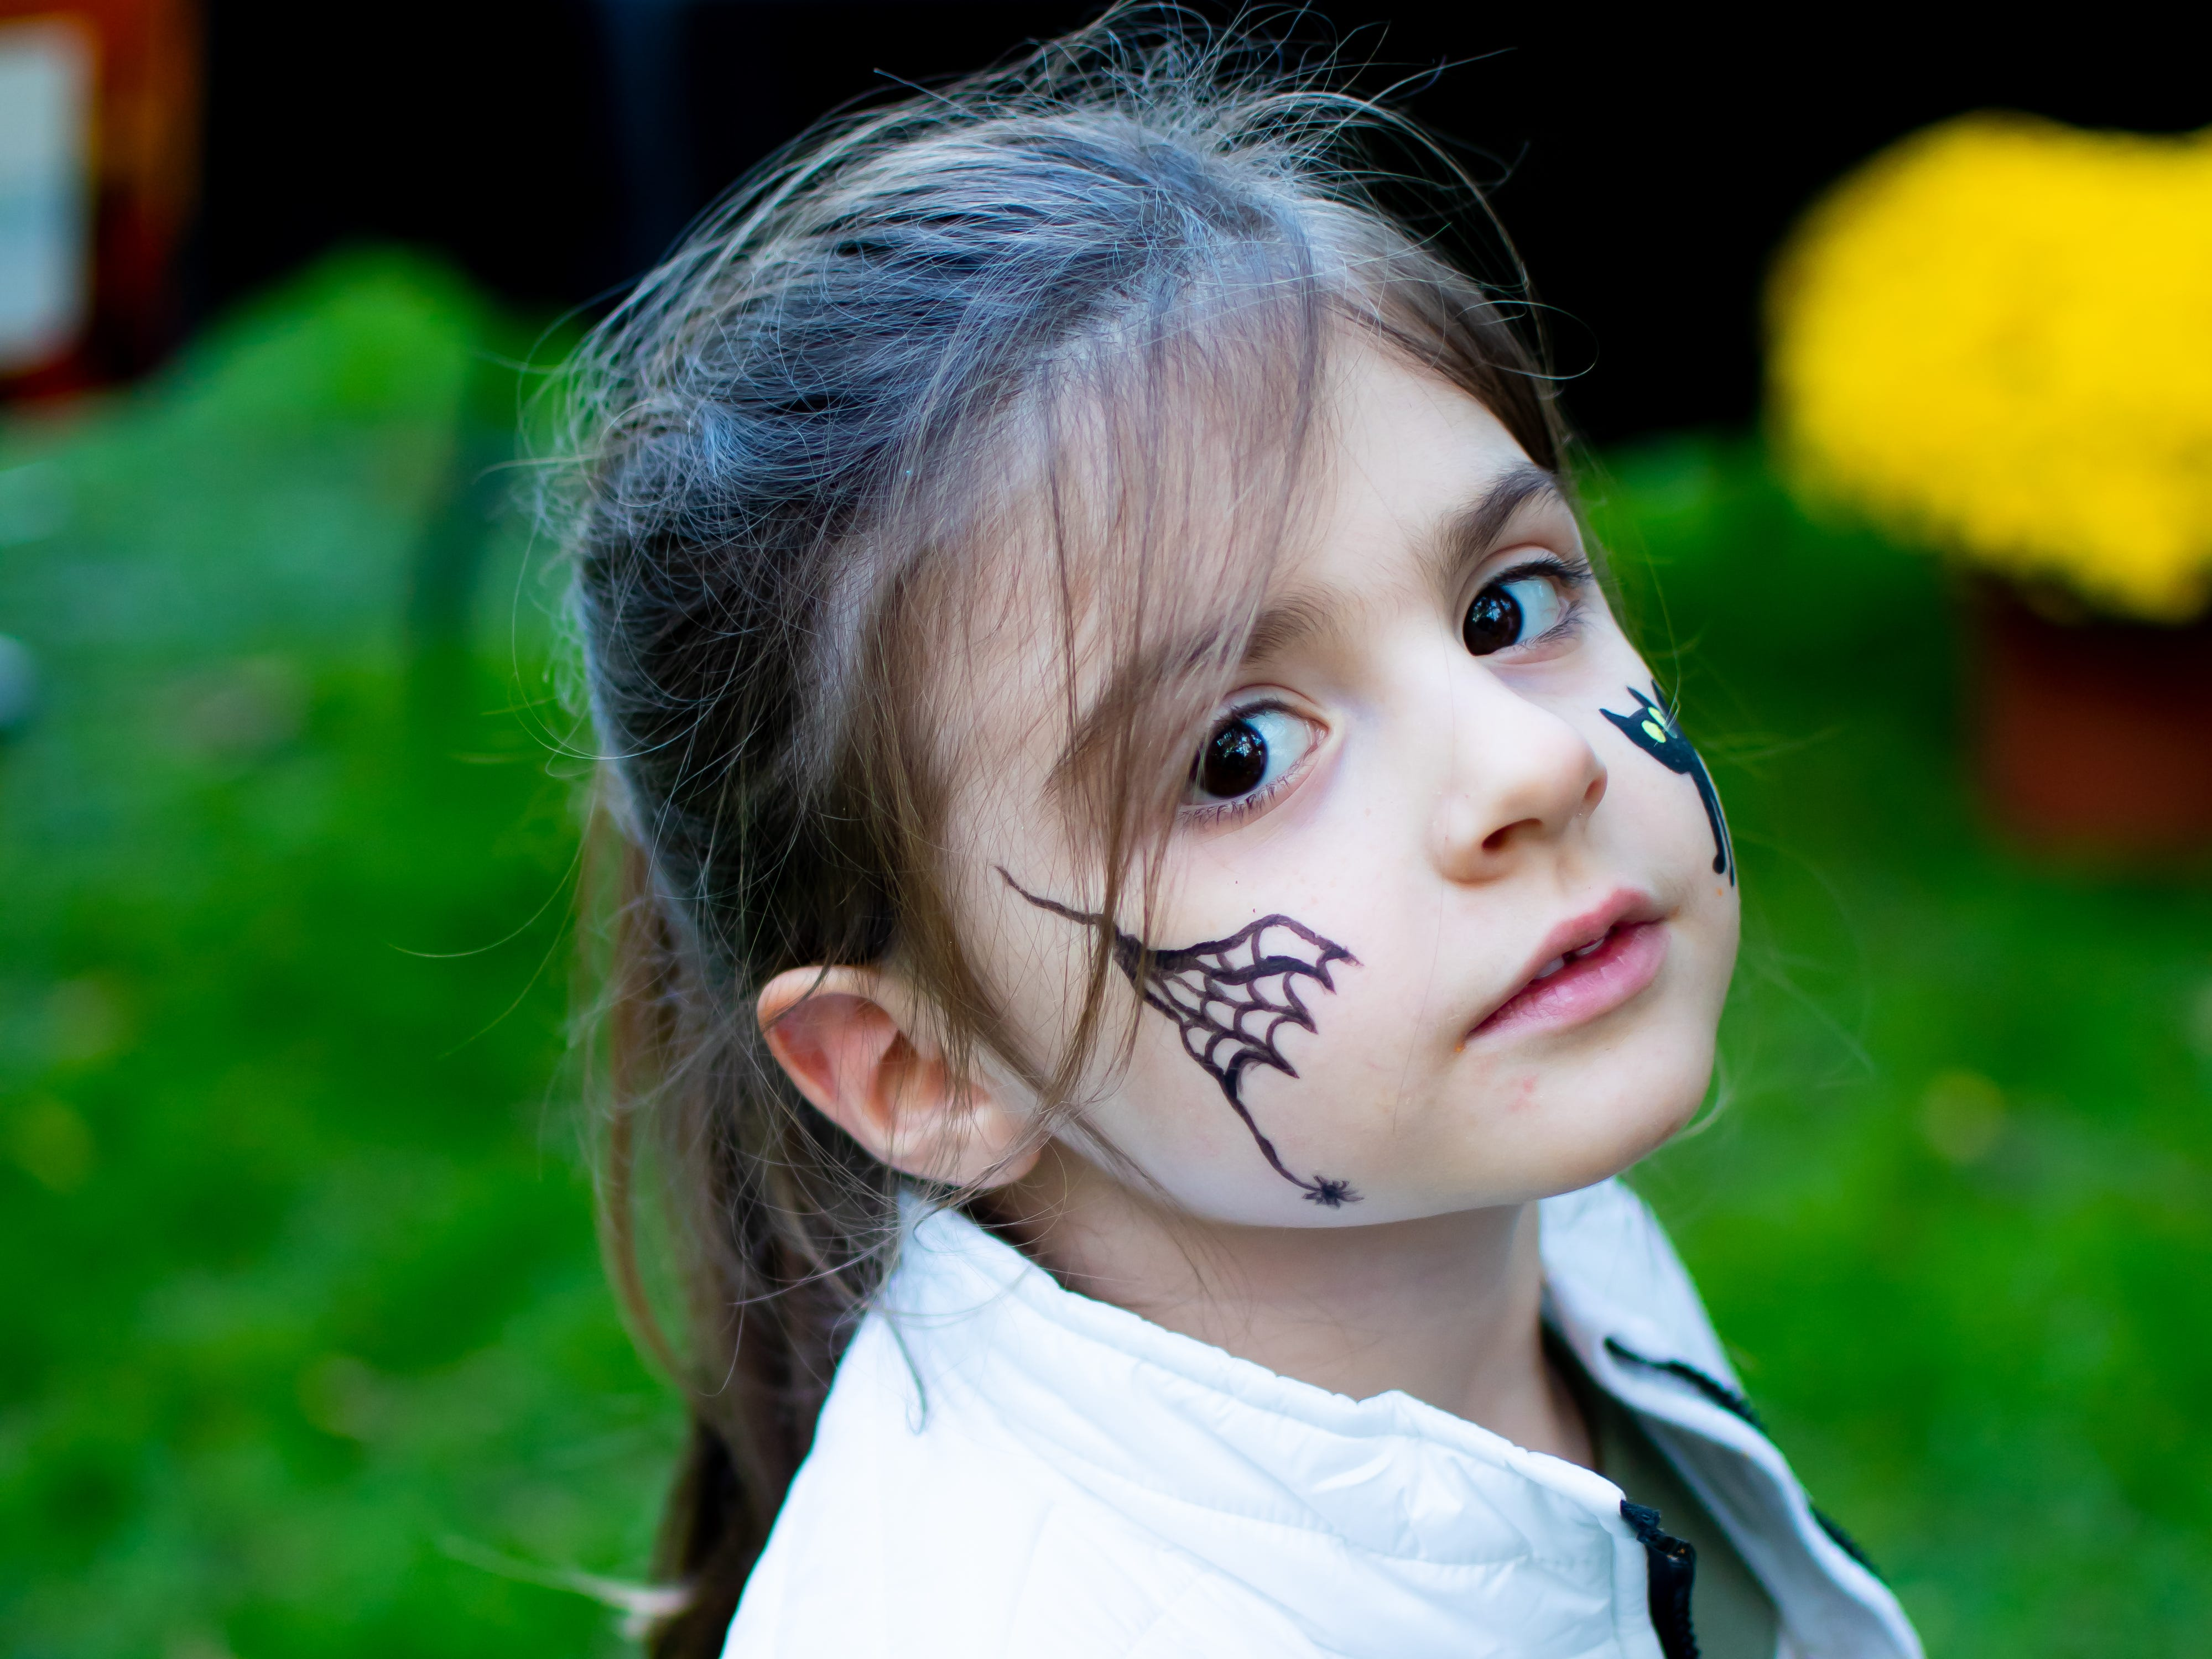 Chelsea Miller, 4, of Waukee got her face painted on Tuesday, October 16, 2018 for the Waukee Area Chamber of Commerce fall after hours party at Timberline Campground in Waukee.